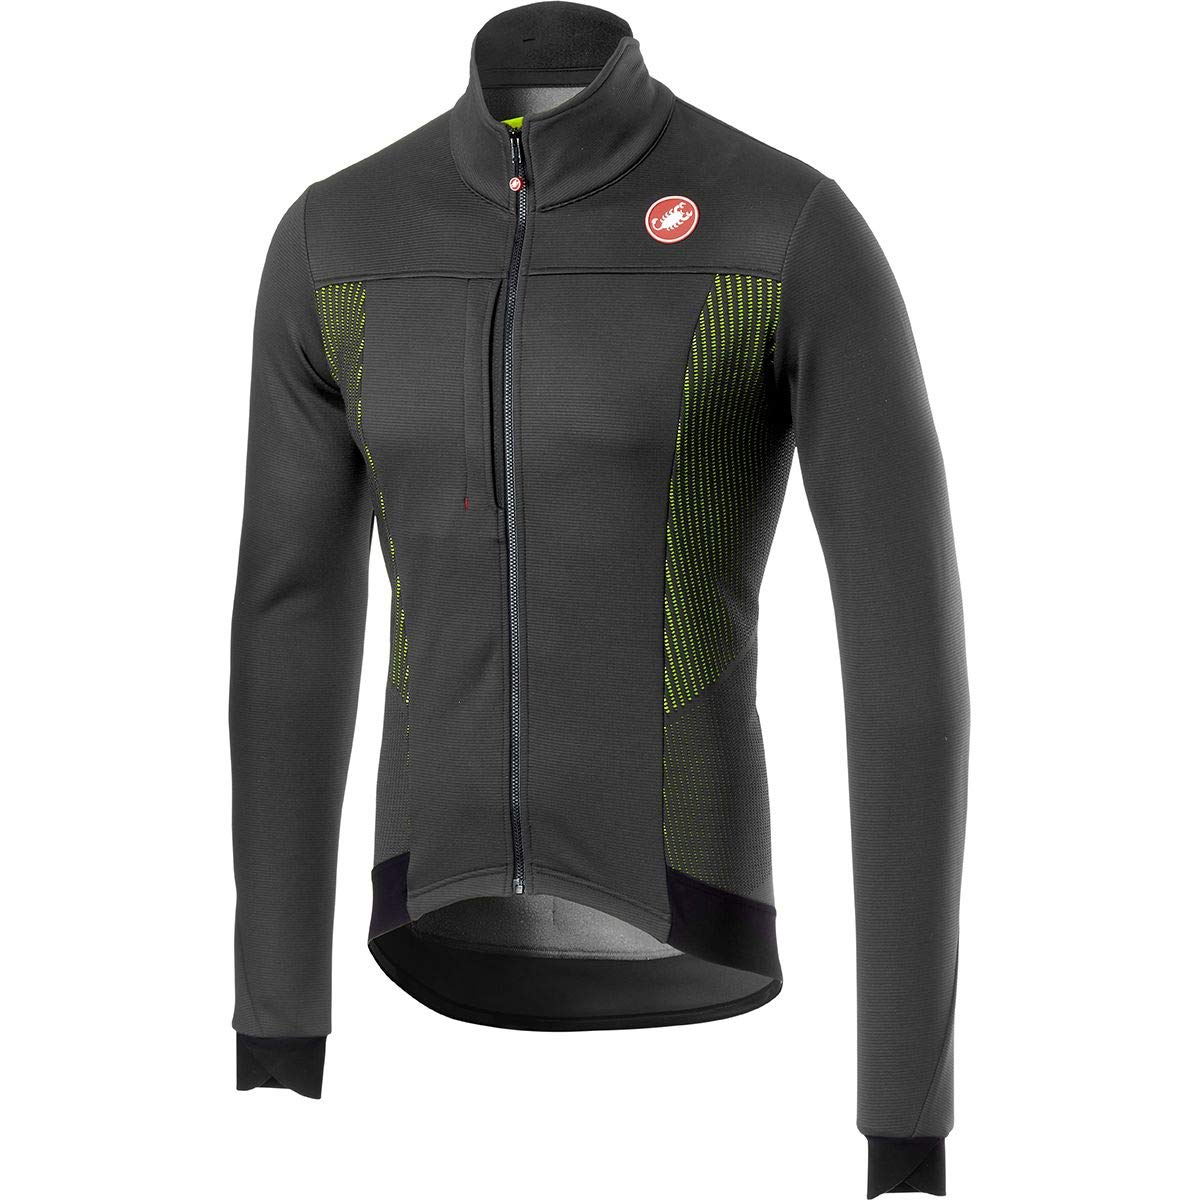 Castelli Espresso Vジャケット メンズ B07H8QSZ3Z X-Large|Dark Gray/Yellow Fluo Dark Gray/Yellow Fluo X-Large